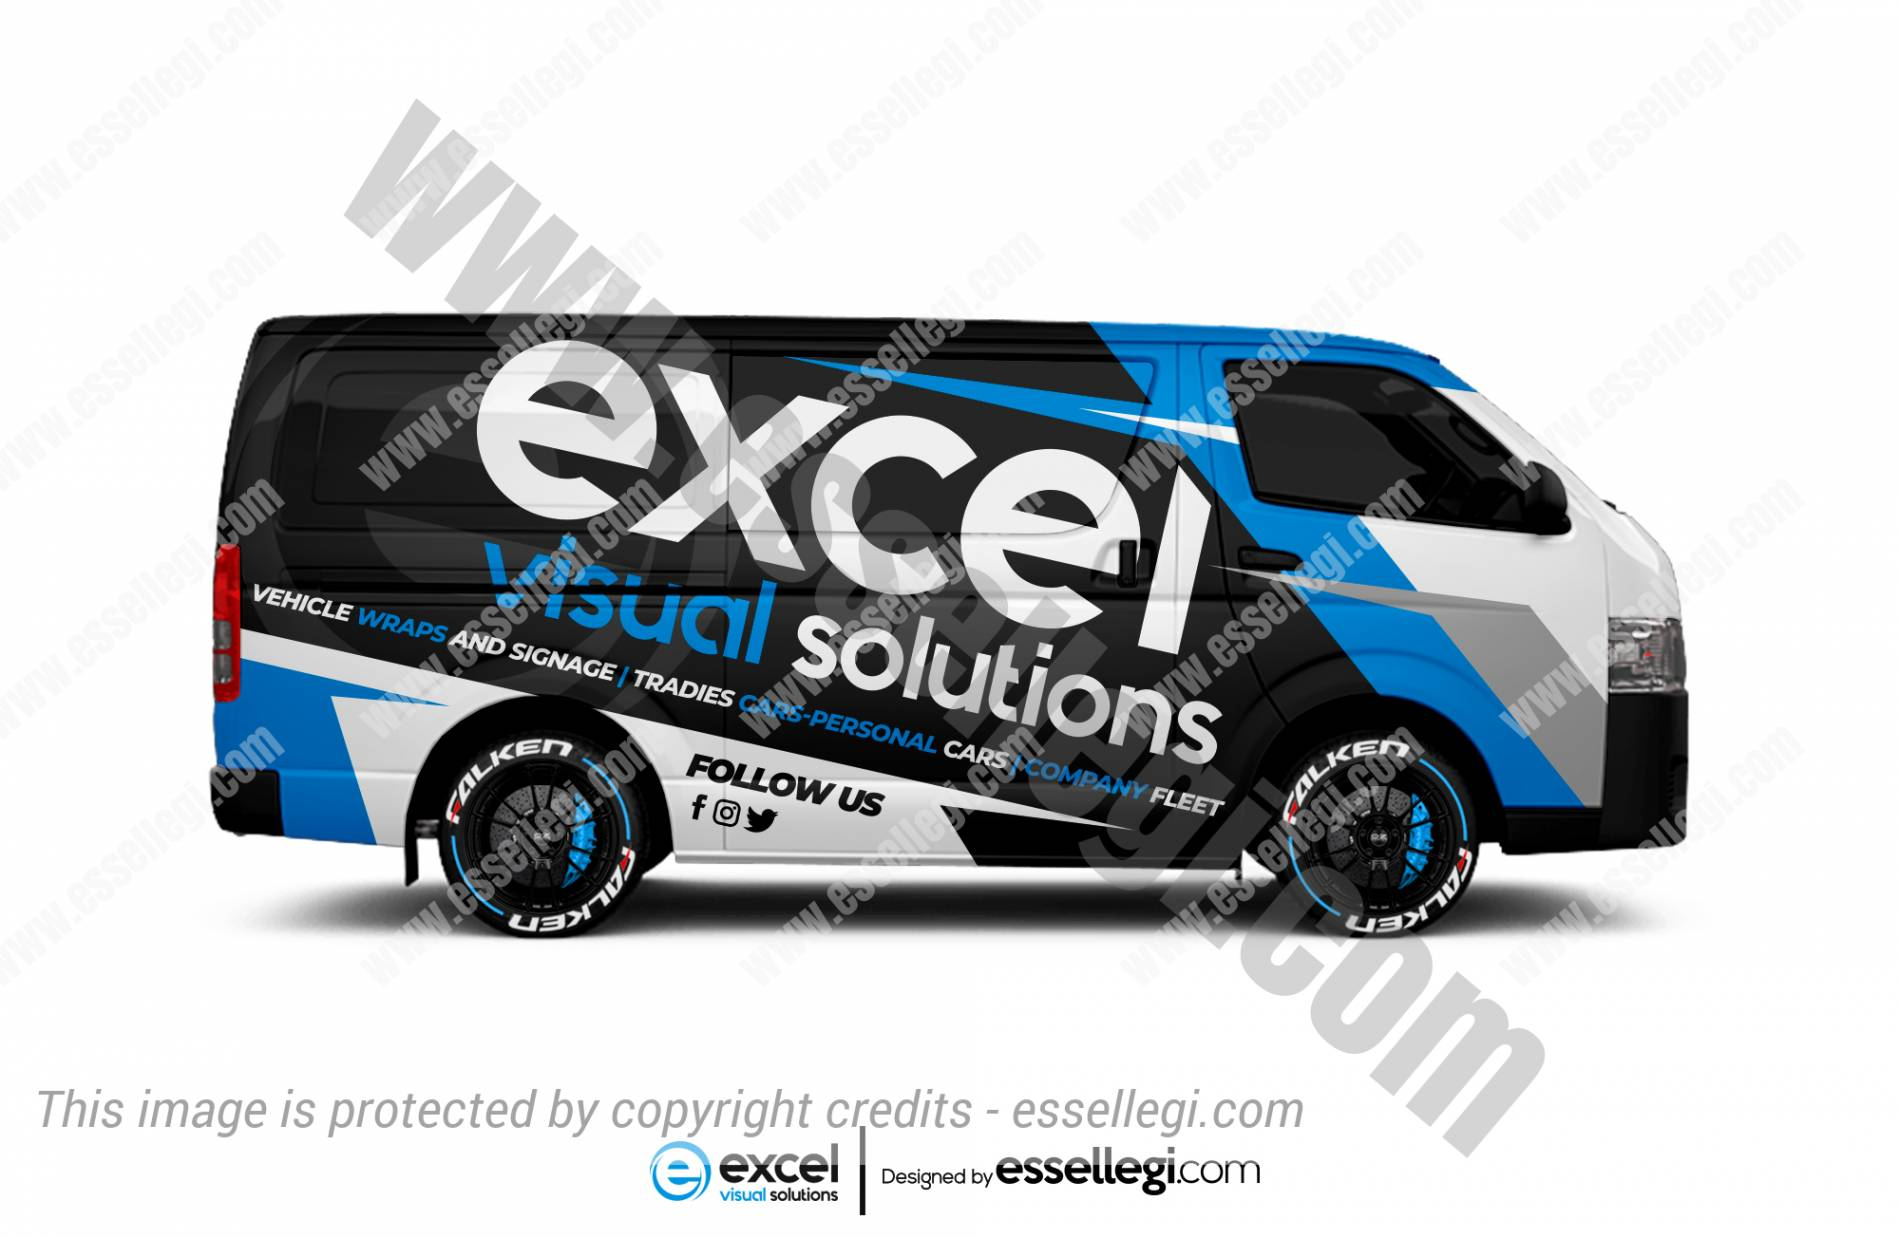 Toyota Hiace Wrap Design. Toyota Hiace | Van Wrap Design by Essellegi. Van Signs, Van Signage, Van Wrapping, Van Signwriting, Van Wrap Designer, Signs for Van, Van Logo, Van Graphic by Essellegi.